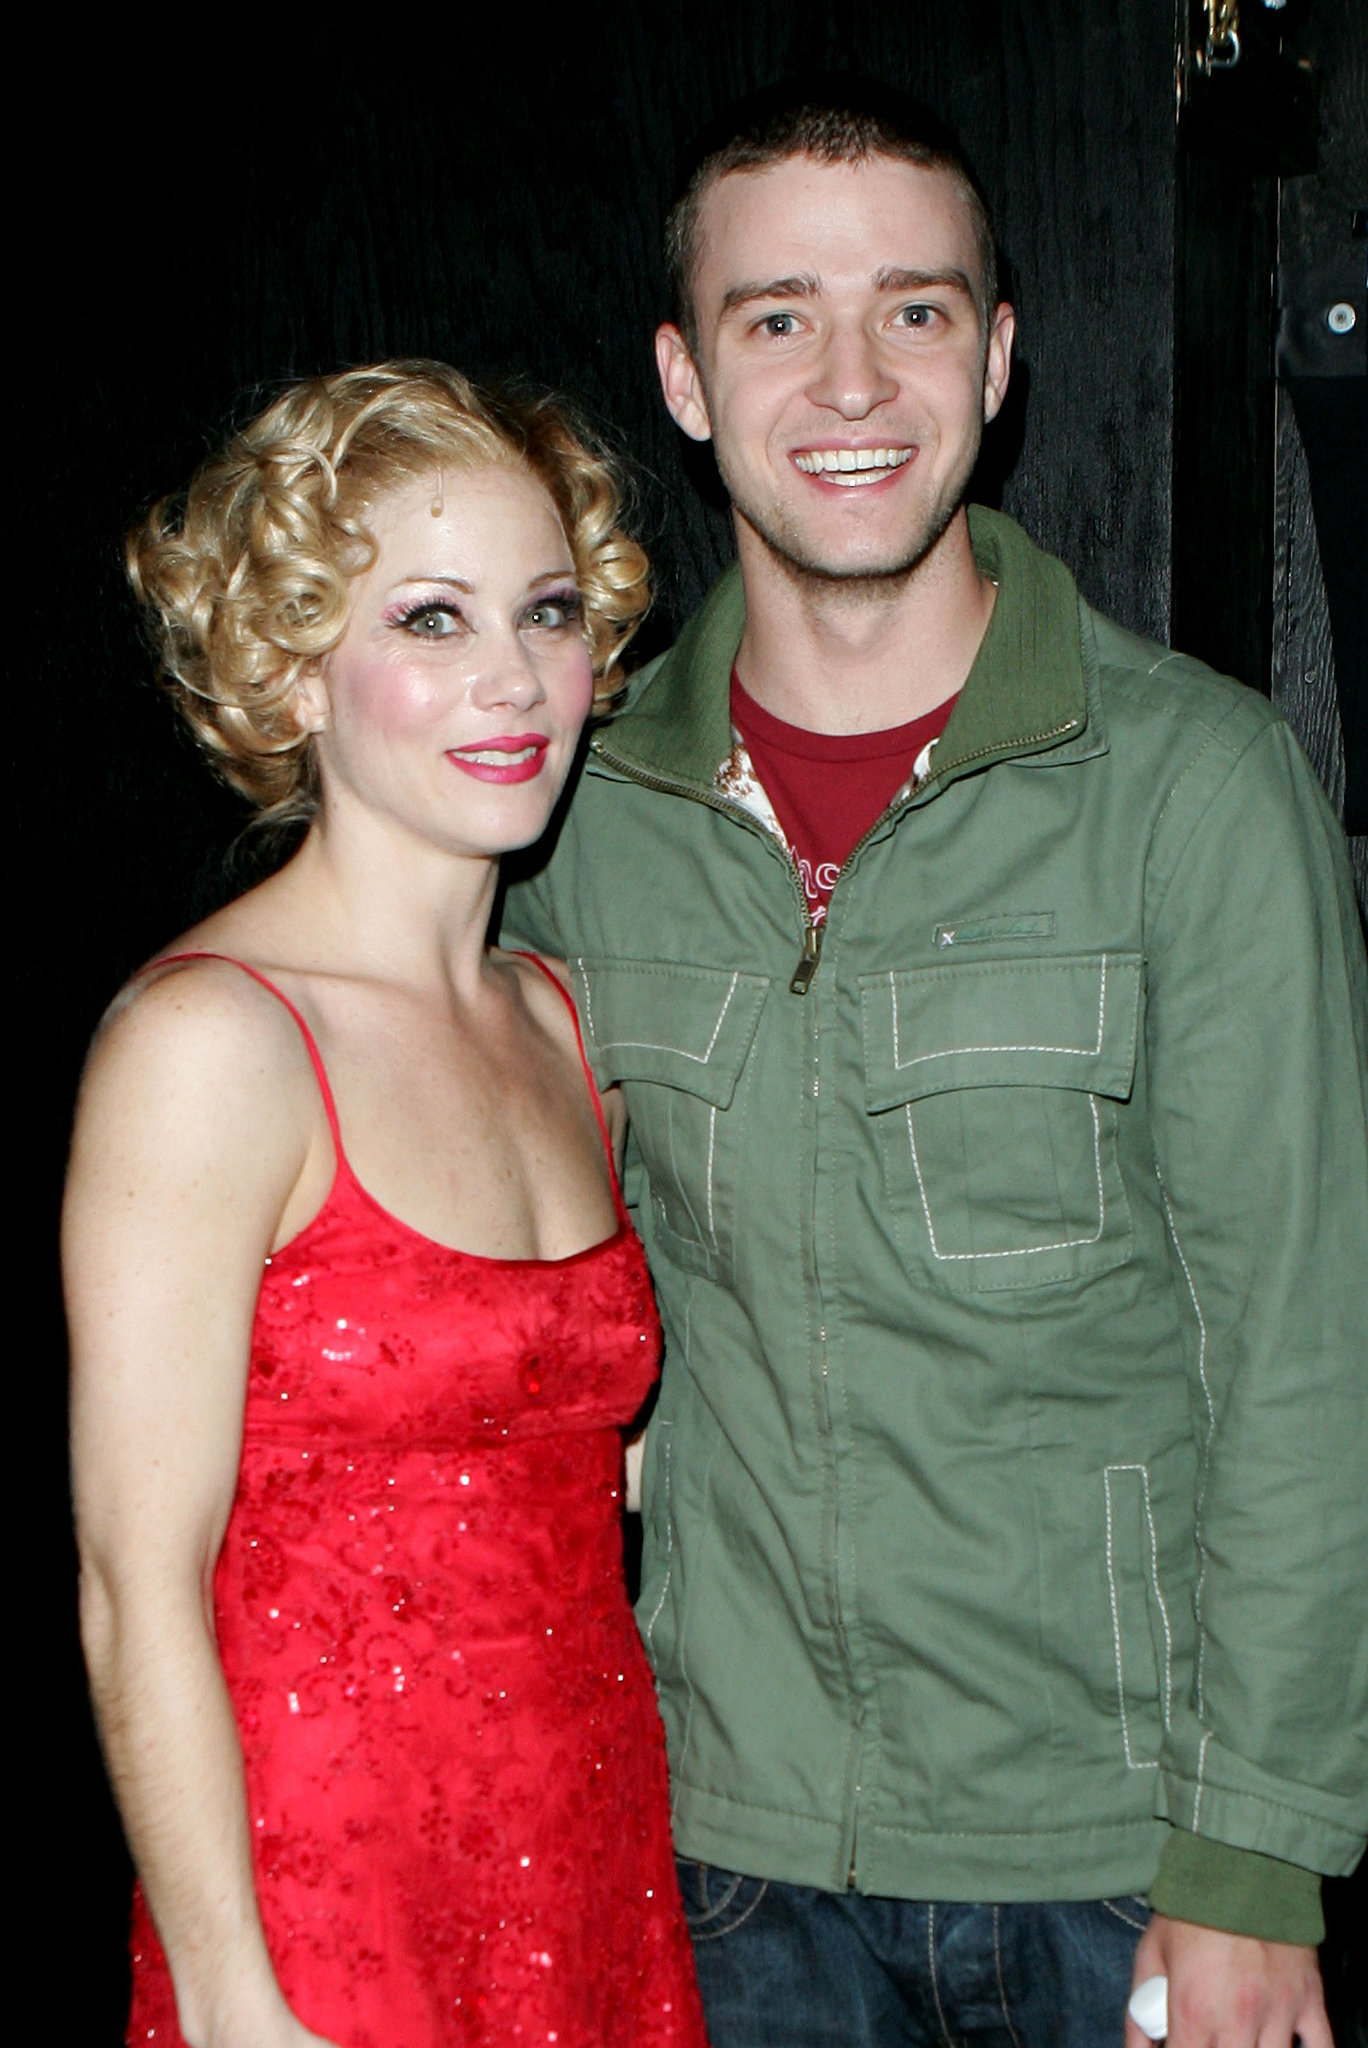 He stopped to support Christina Applegate during her November 2005 Broadway production, Sweet Charity.